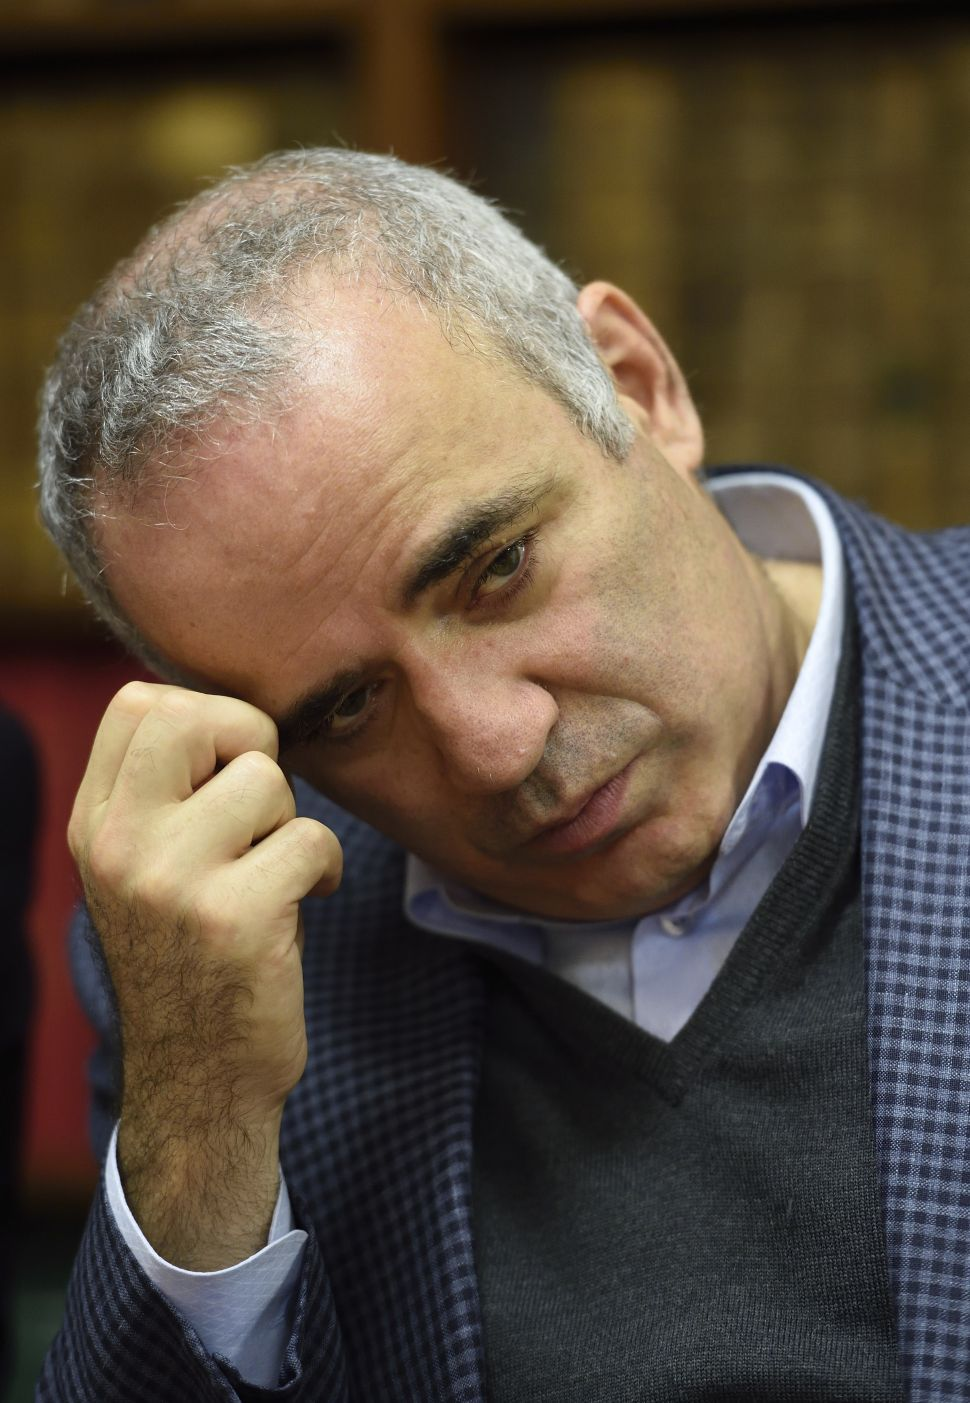 Putin's Press Relishes Chess Icon Garry Kasparov's Bribery Scandal